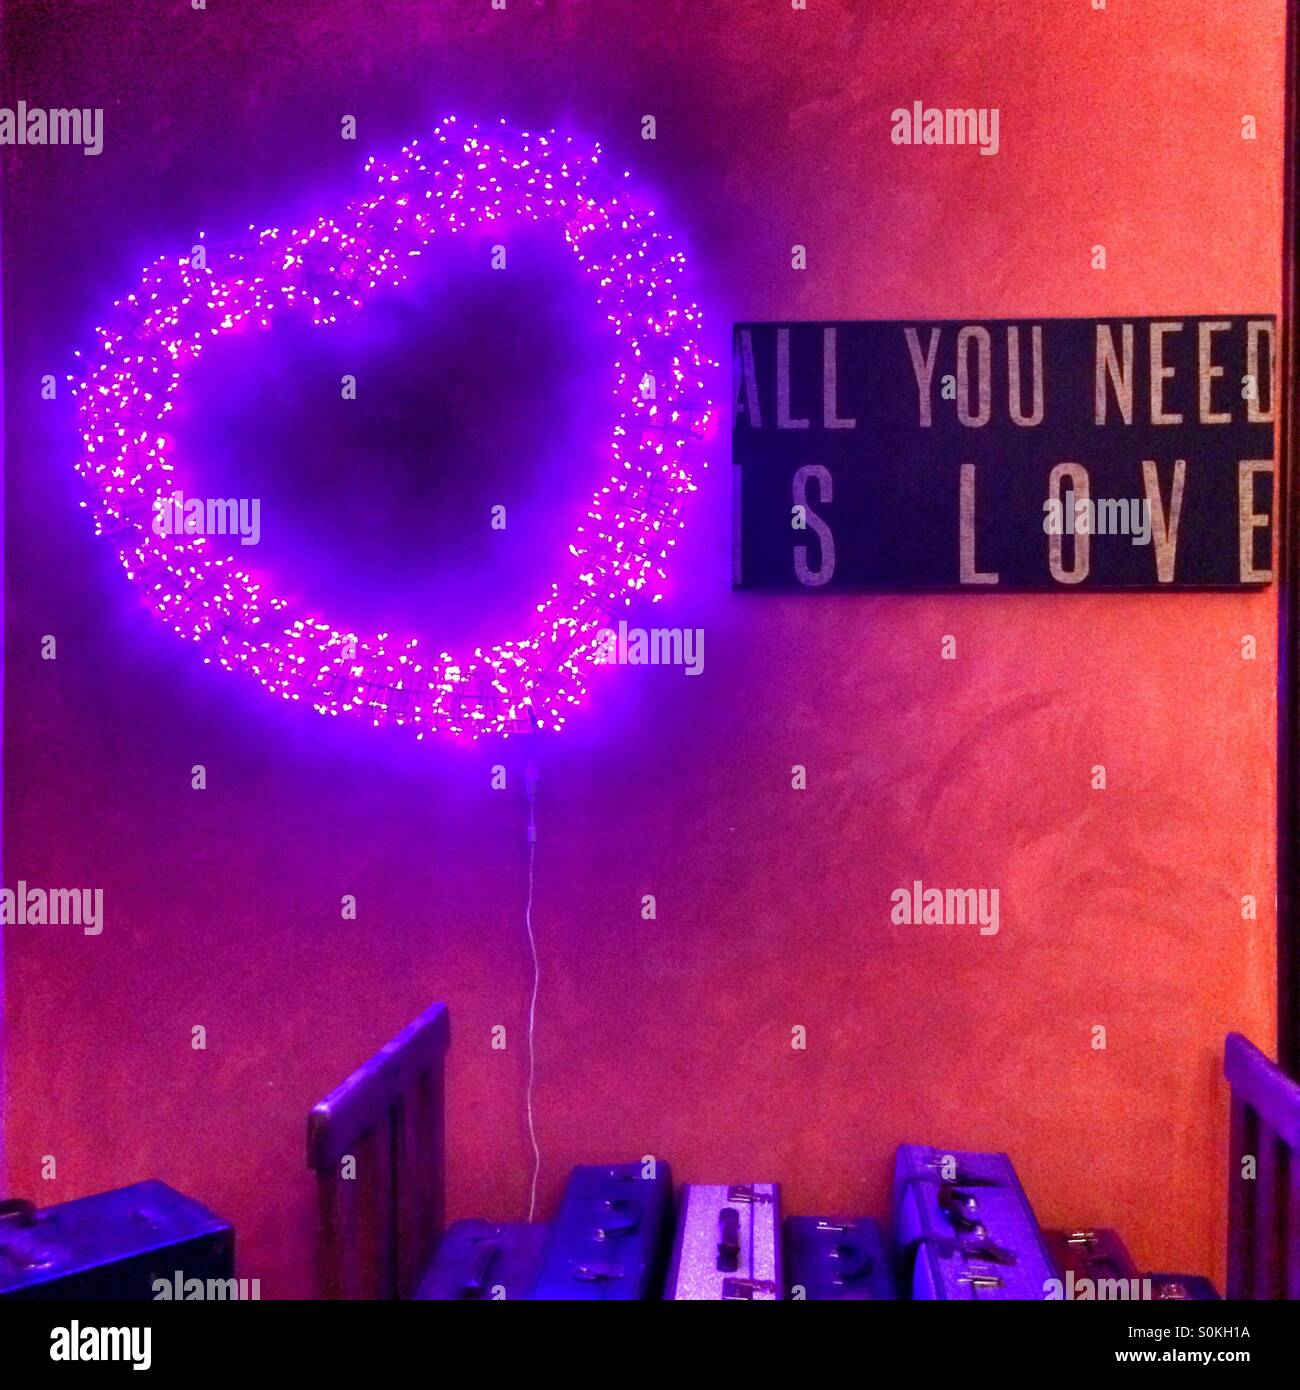 A love heart and 'All you need is Love' sign. - Stock Image